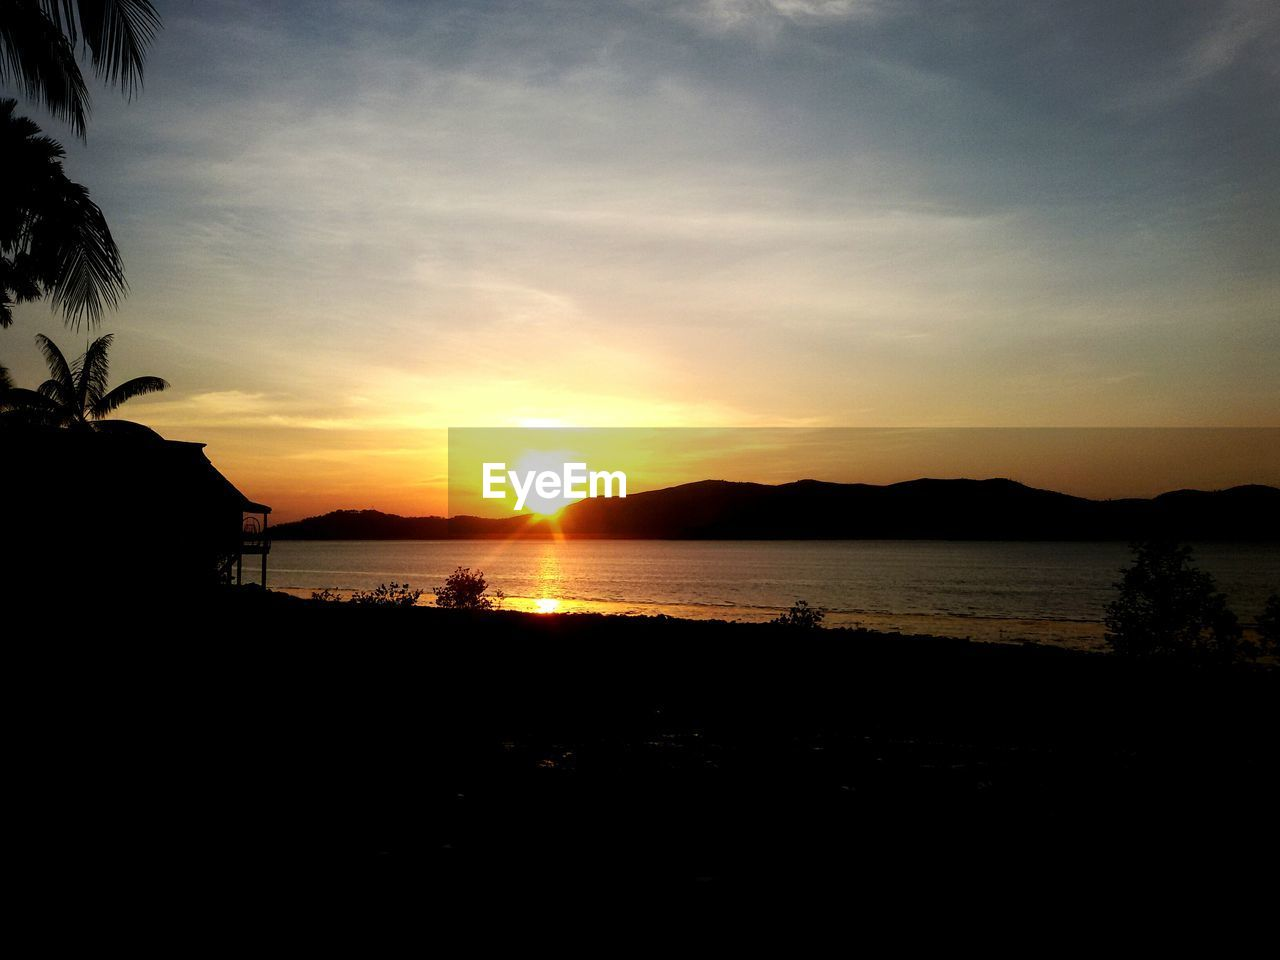 sunset, silhouette, water, beauty in nature, scenics, sea, nature, sky, tranquility, tranquil scene, sun, outdoors, no people, beach, horizon over water, tree